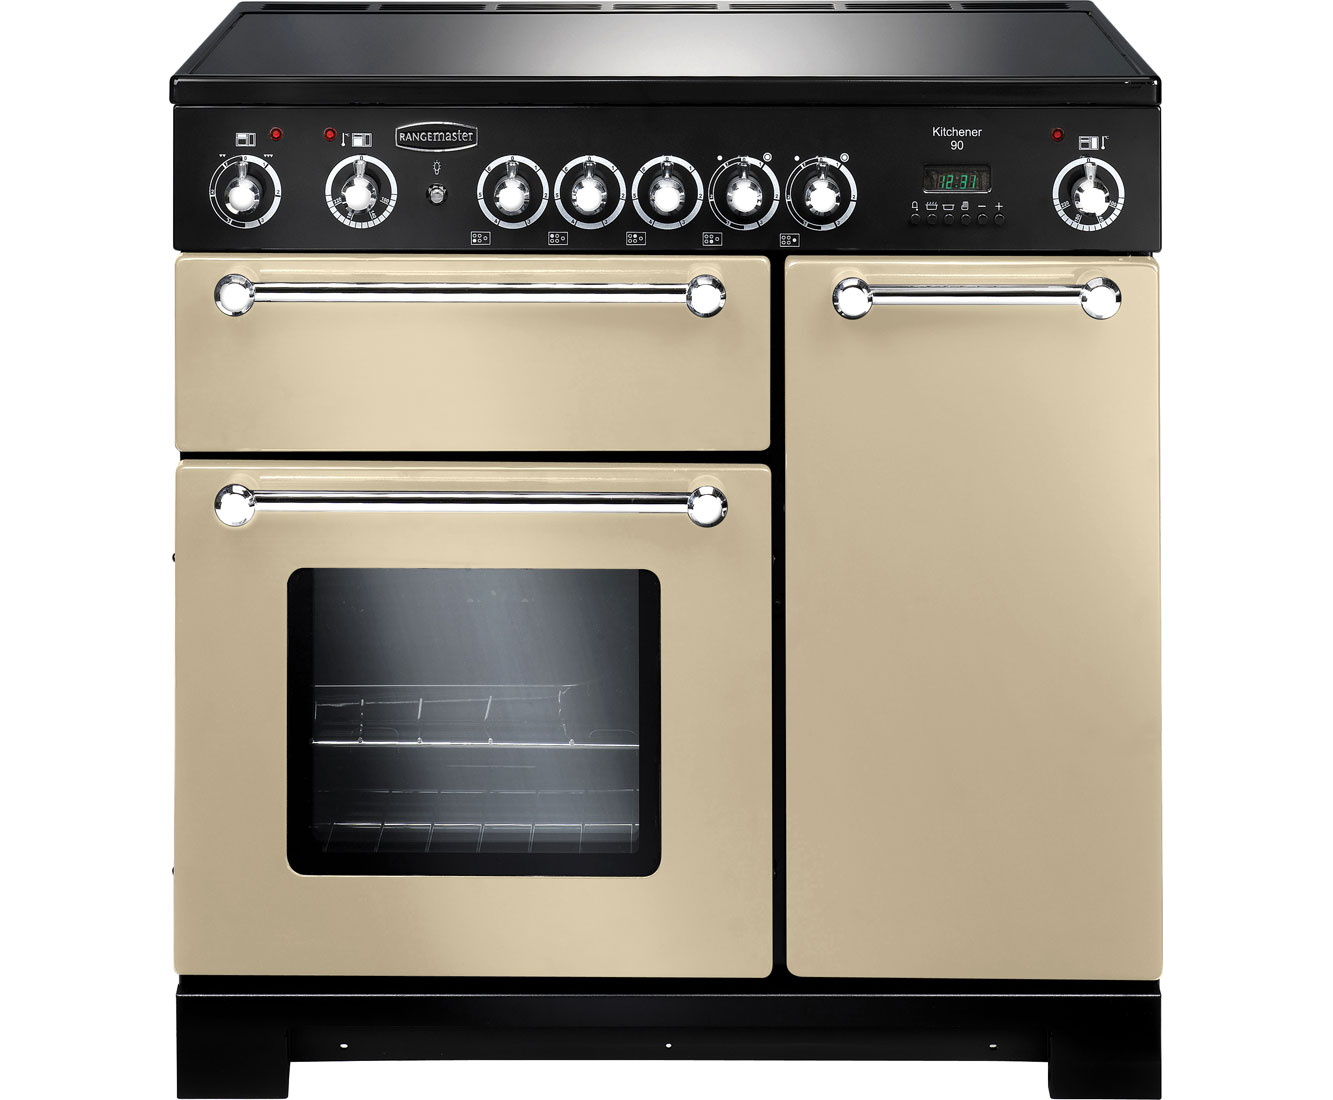 Rangemaster Kitchener KCH90ECCRC Free Standing Range Cooker in Cream  Chrome